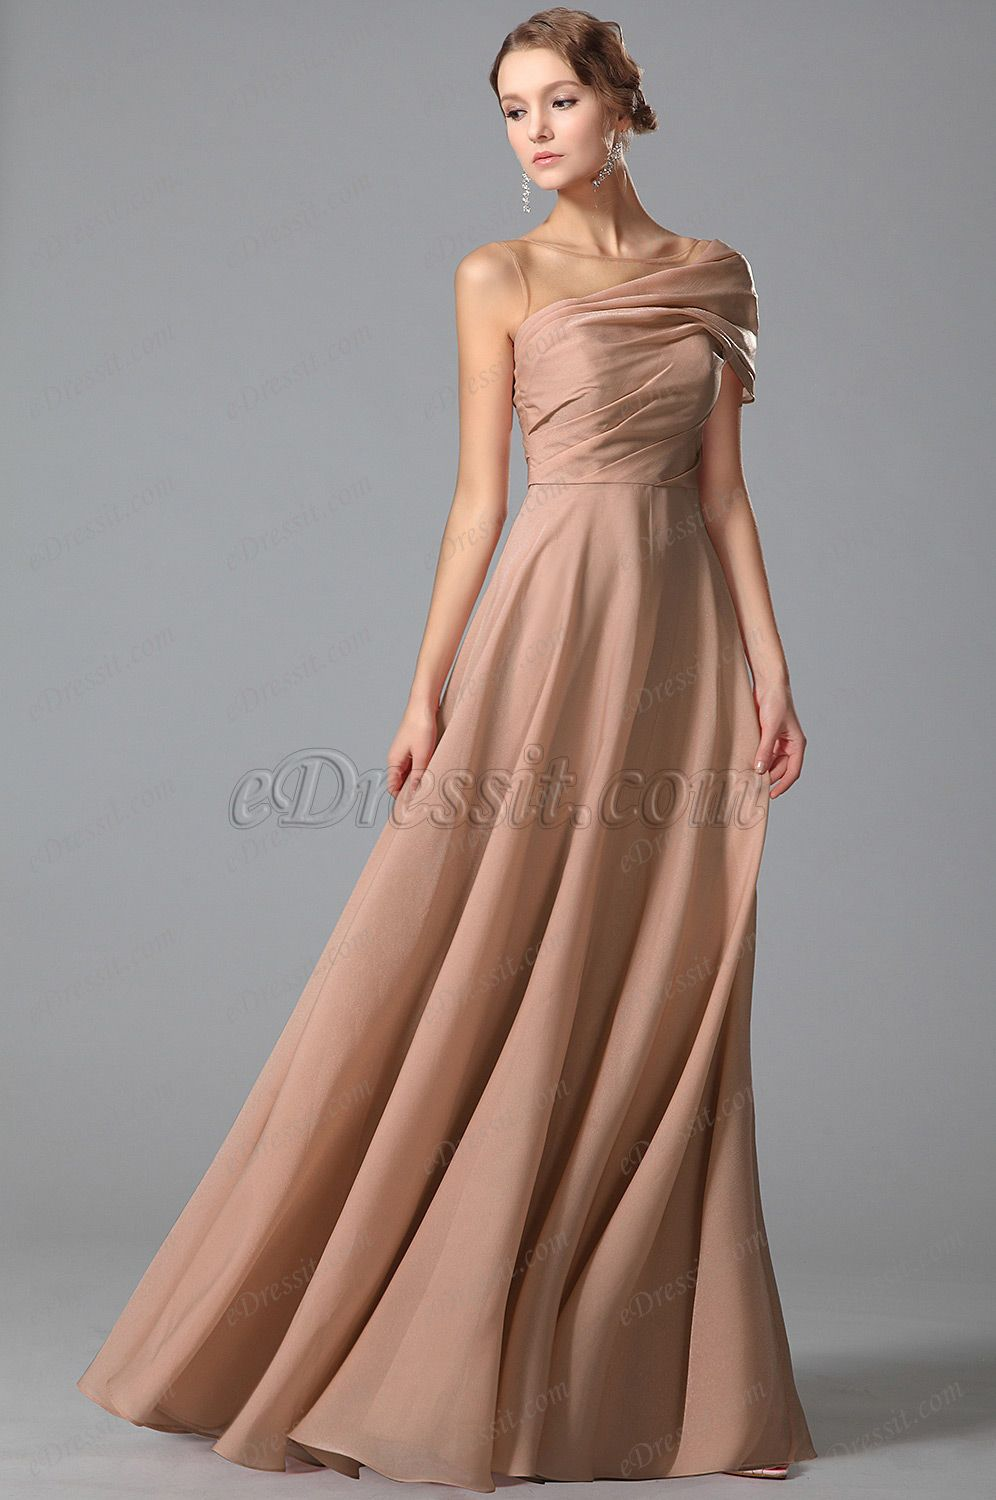 Usd gorgeous floor length evening gown with stylish shoulder